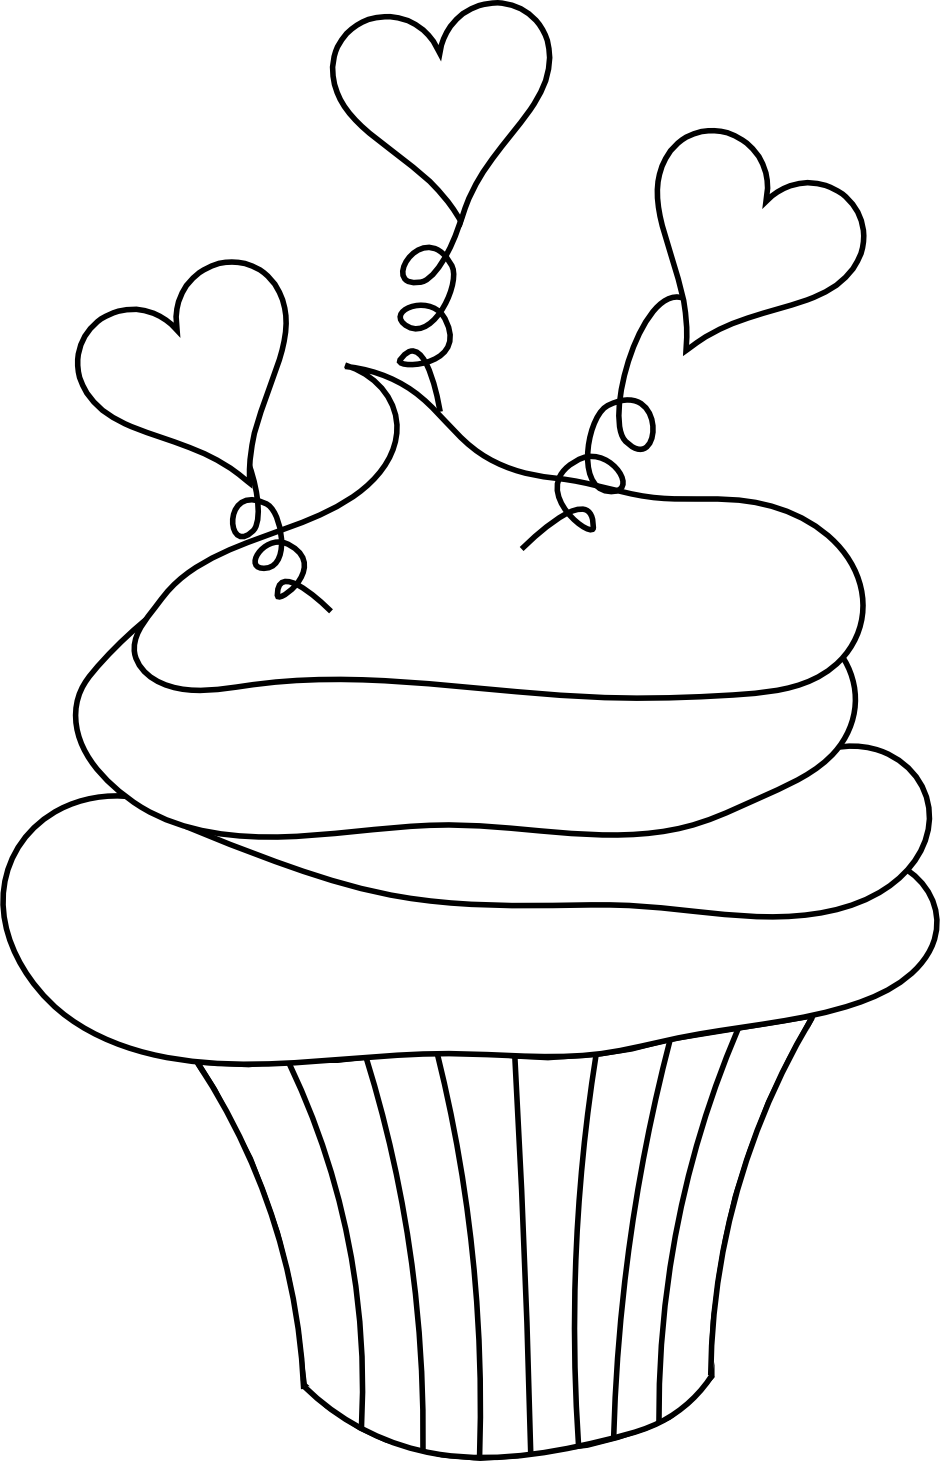 cupcake colouring template 1000 images about birthdays on pinterest clip art template colouring cupcake